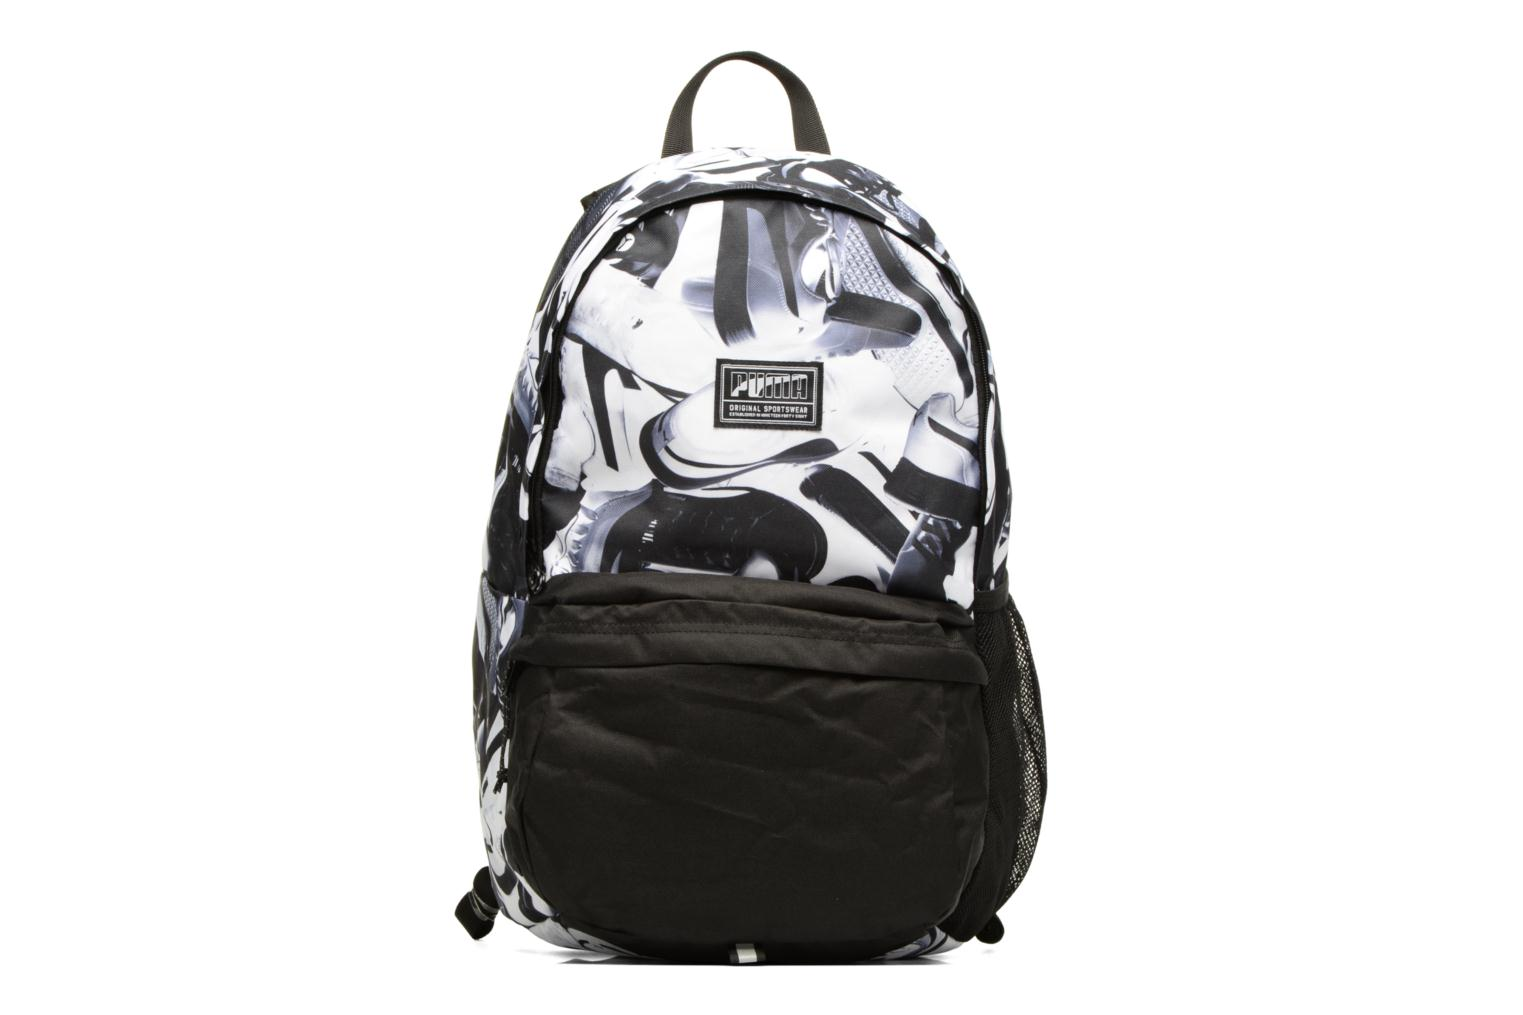 Academy Backpack Black-Puma White-sneaker graphic